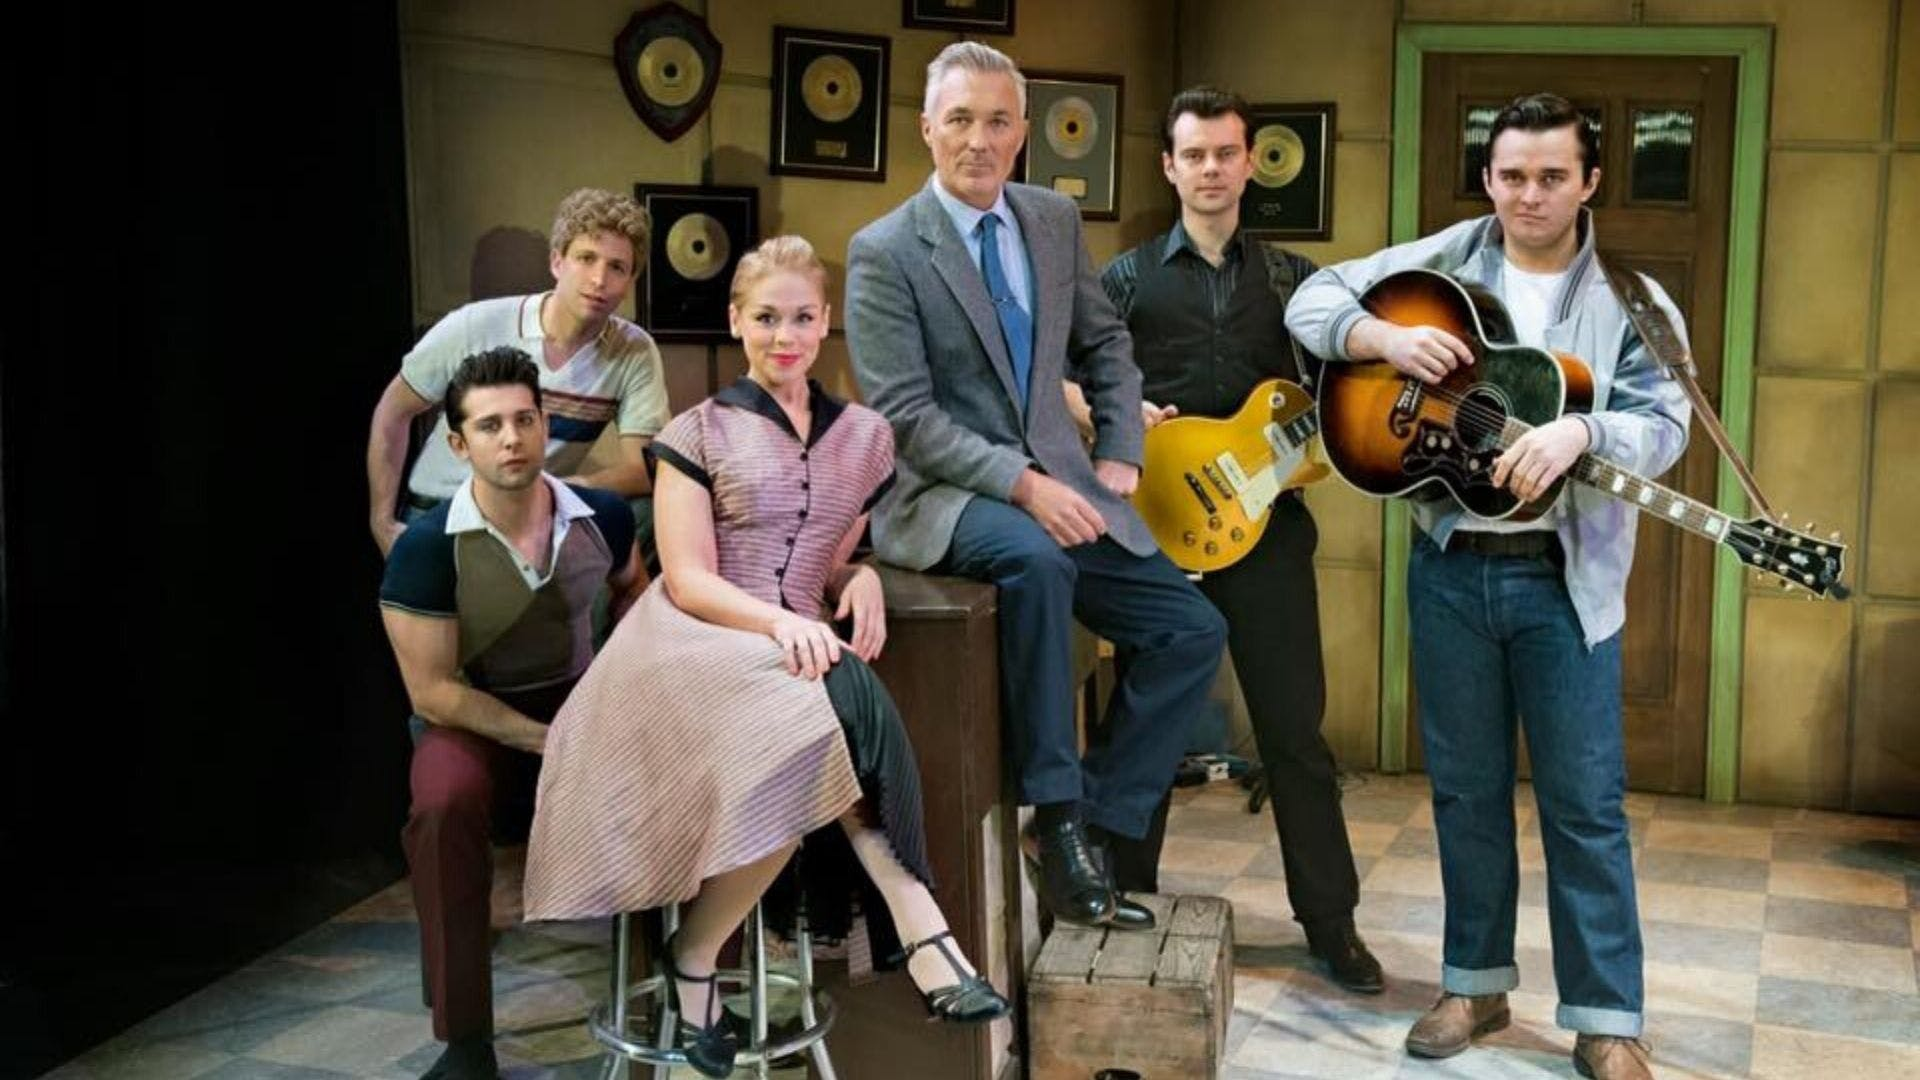 image - Do Not Miss: The Tony Award-Winning Broadway Musical Million Dollar Quartet Is Back For A Second Rockin' Run In The City